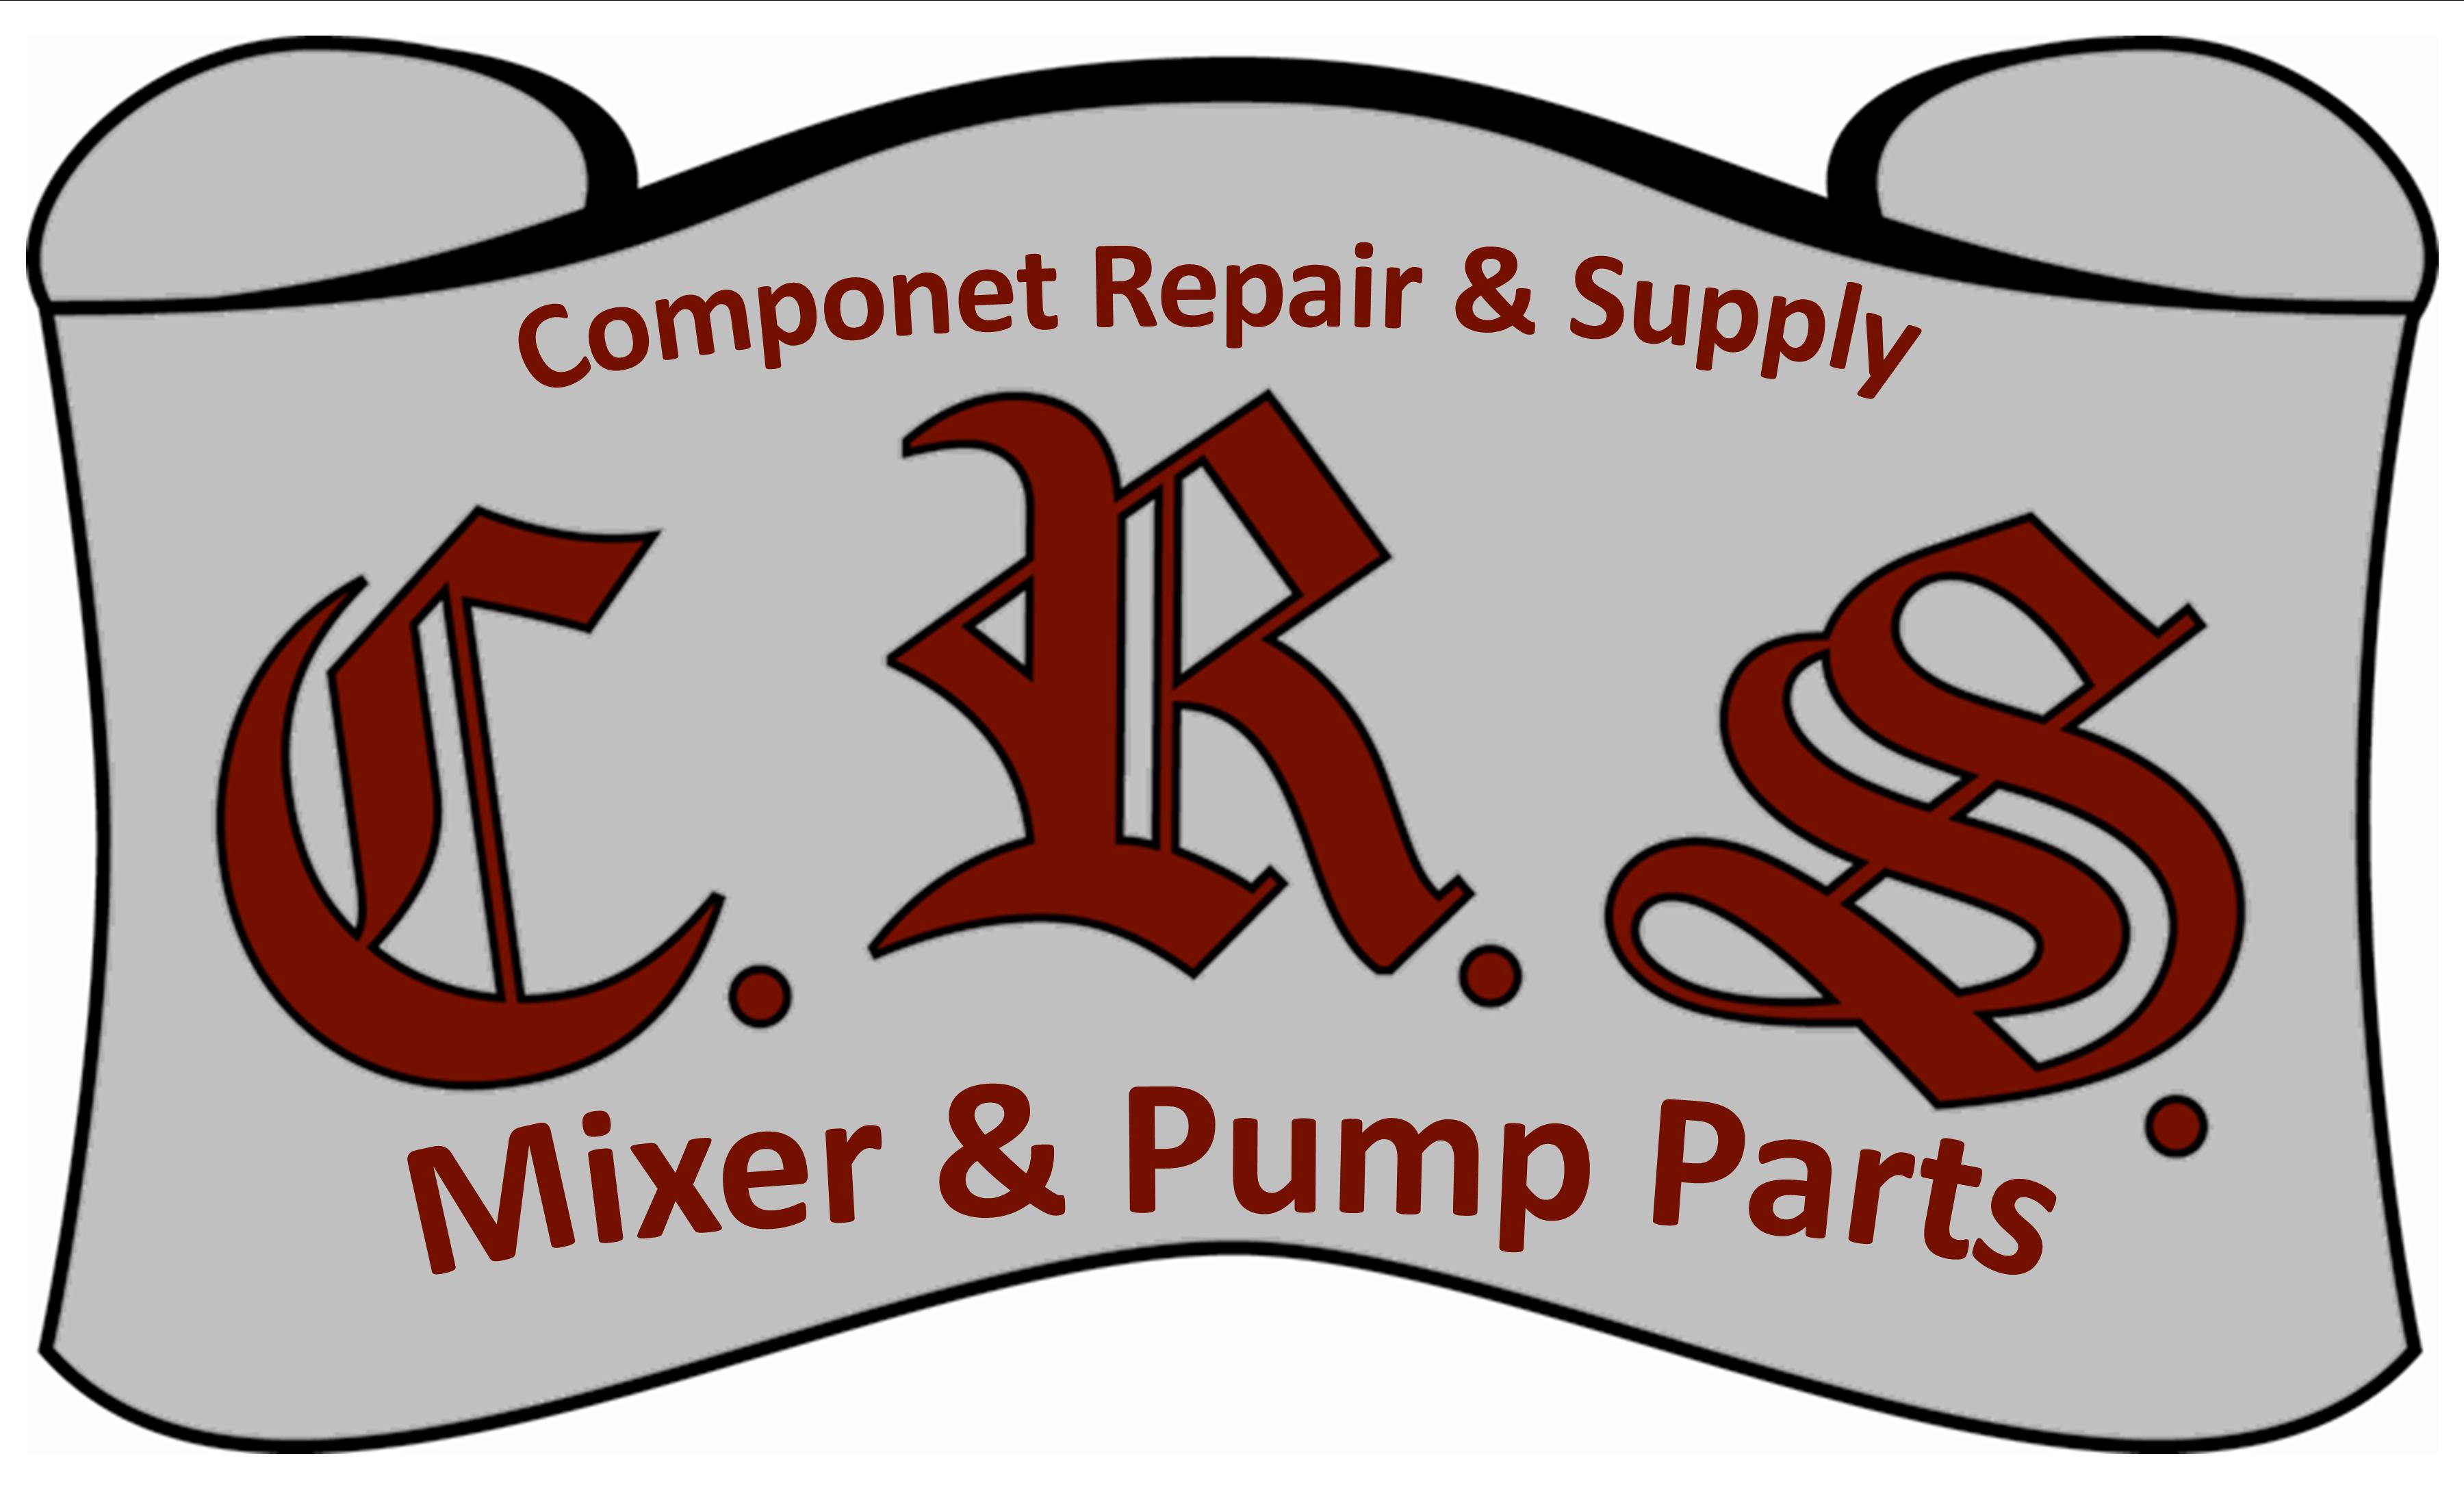 CRS Mixer Pump Parts Logo JPEG